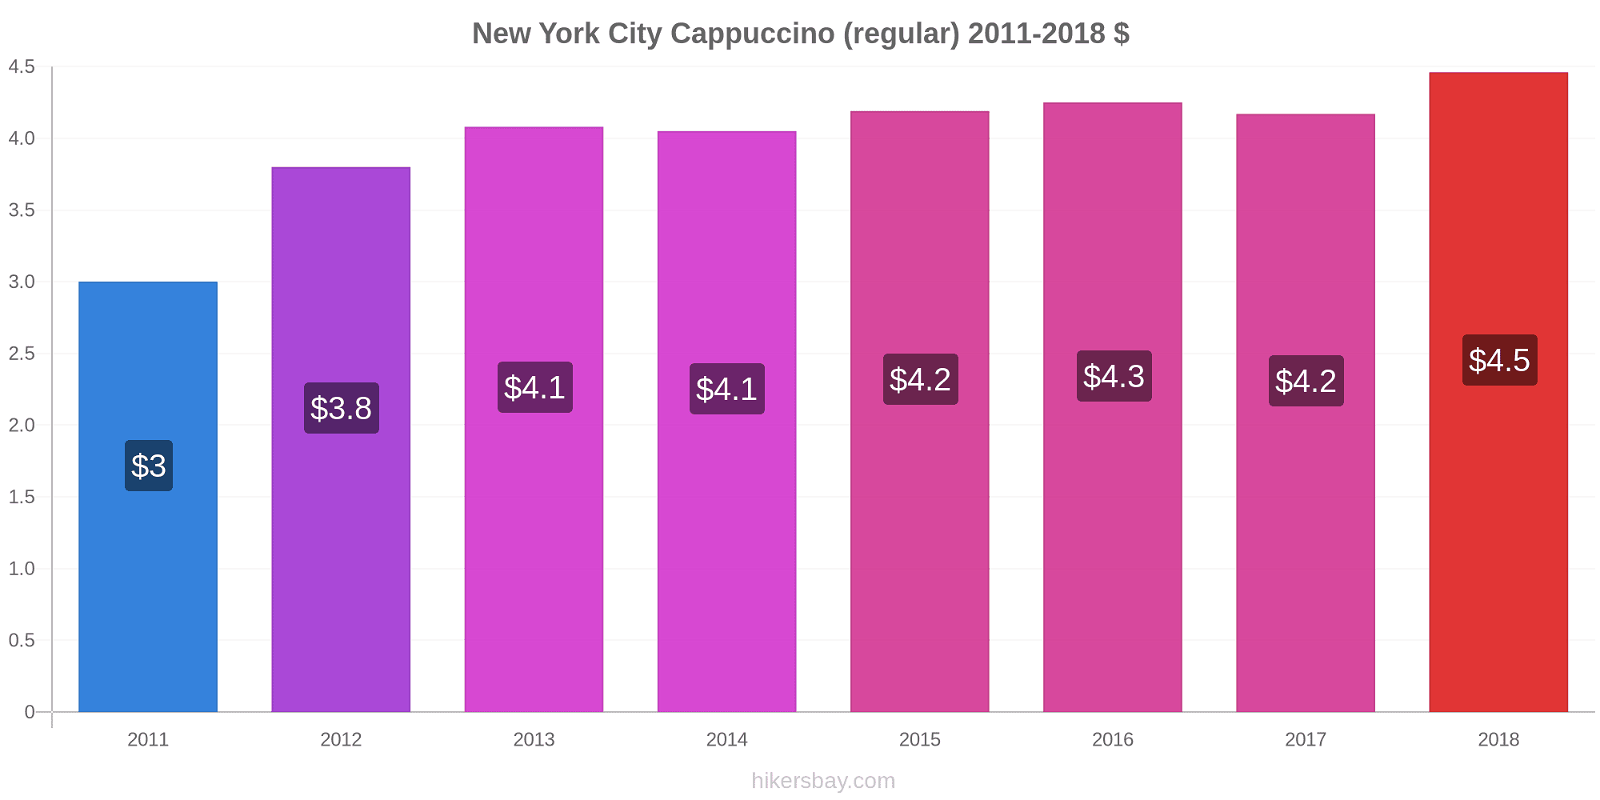 New York City price changes Cappuccino (regular) hikersbay.com